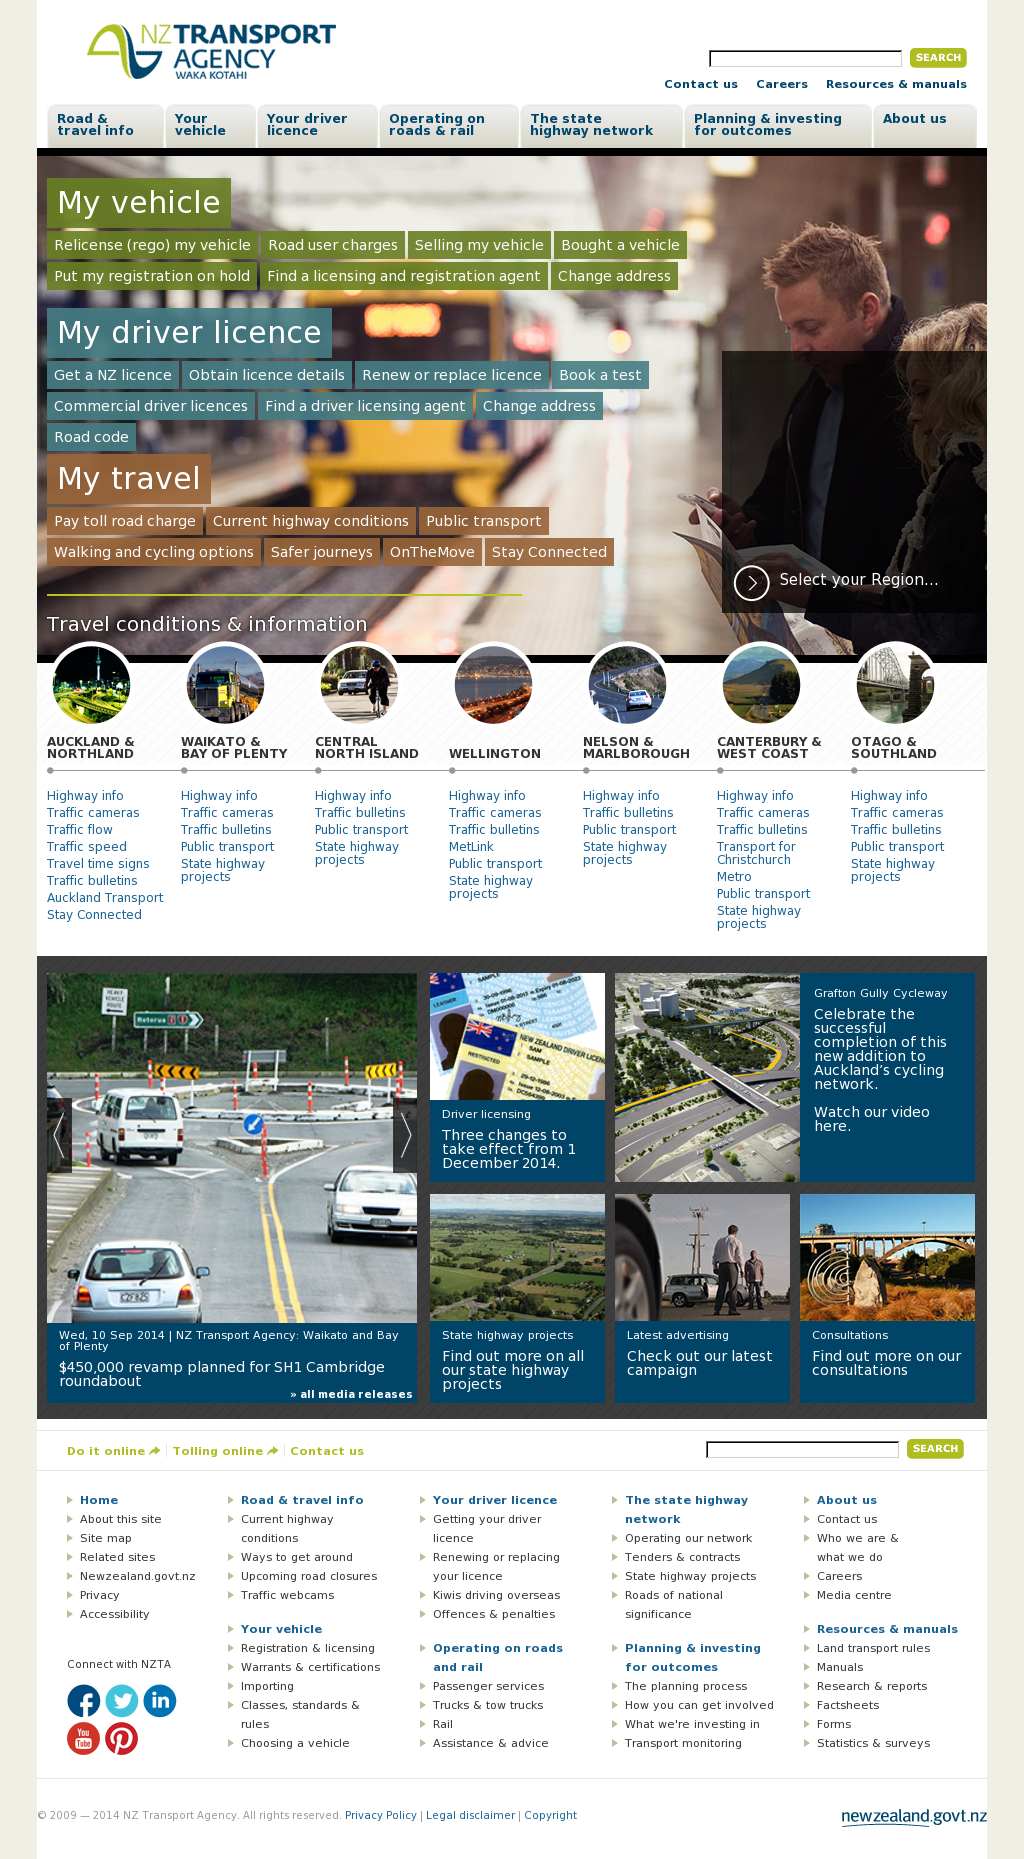 Owler Reports - NZ Transport Agency: NZTA launches